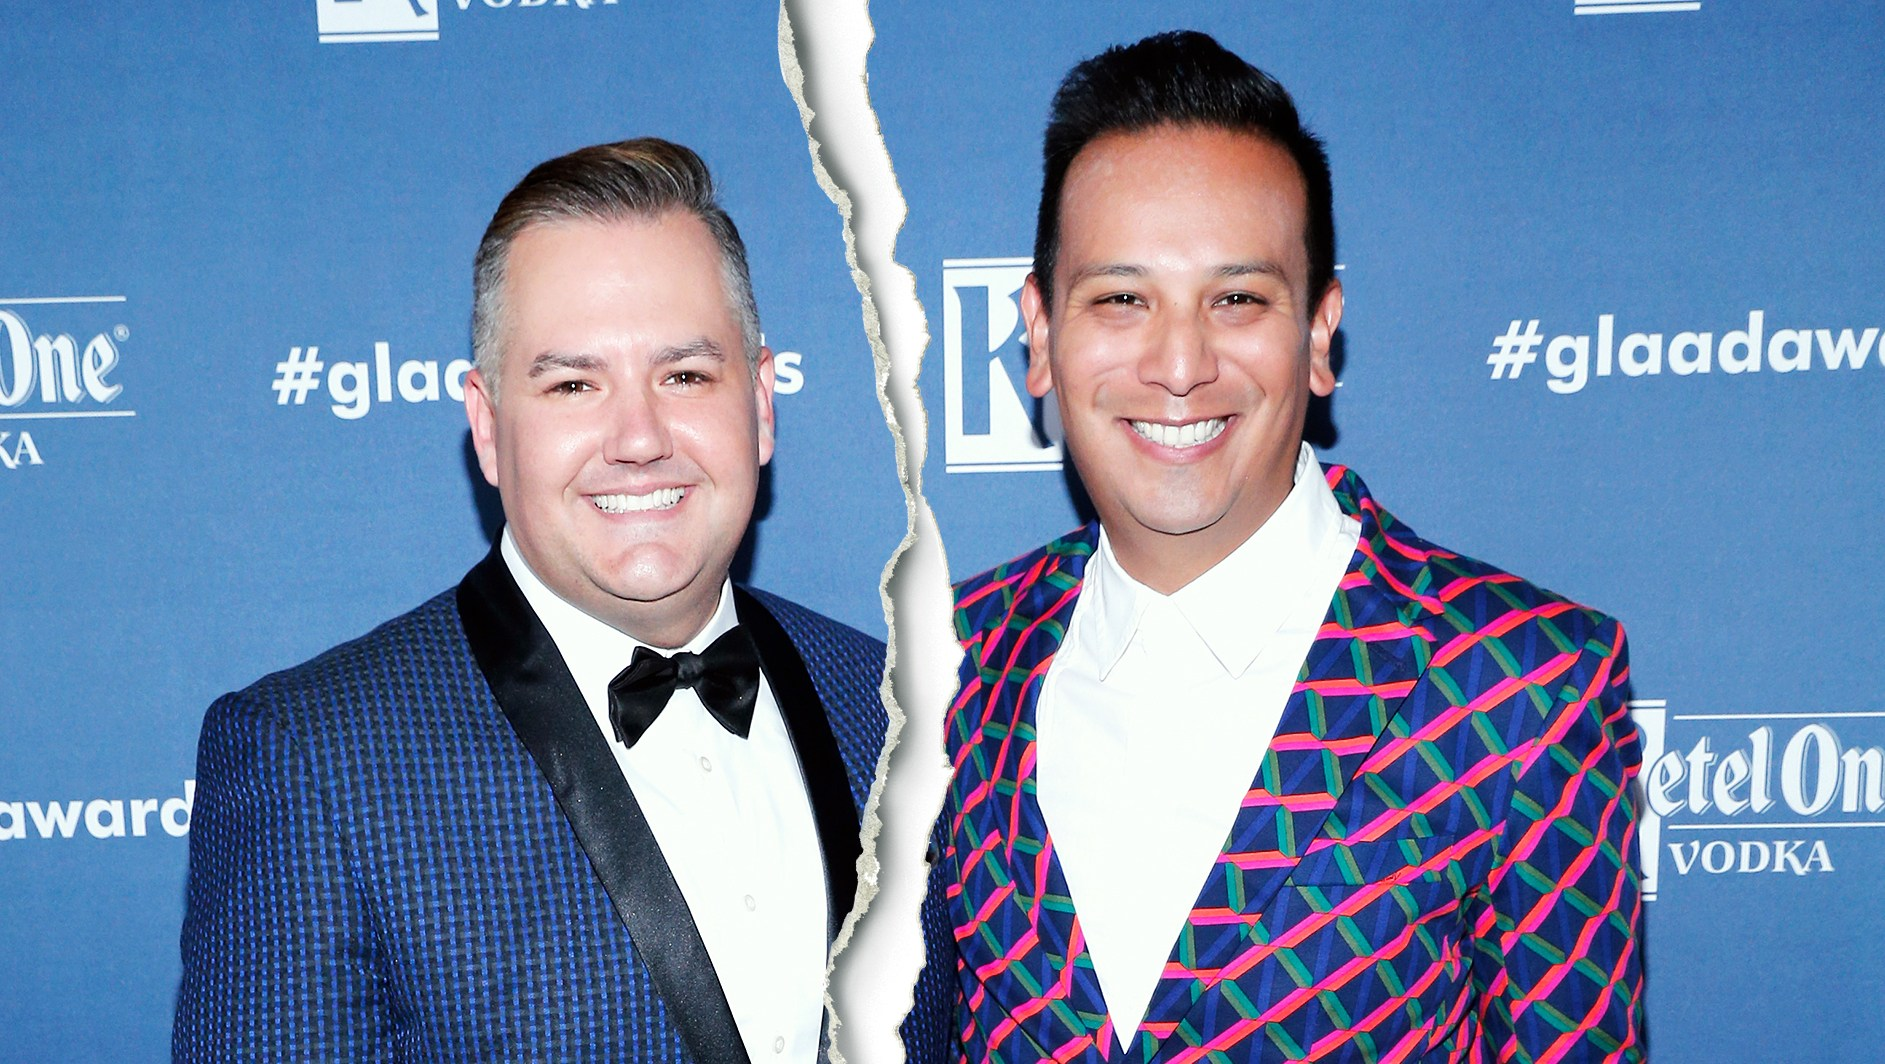 Ross Mathews Salvador Camarena split